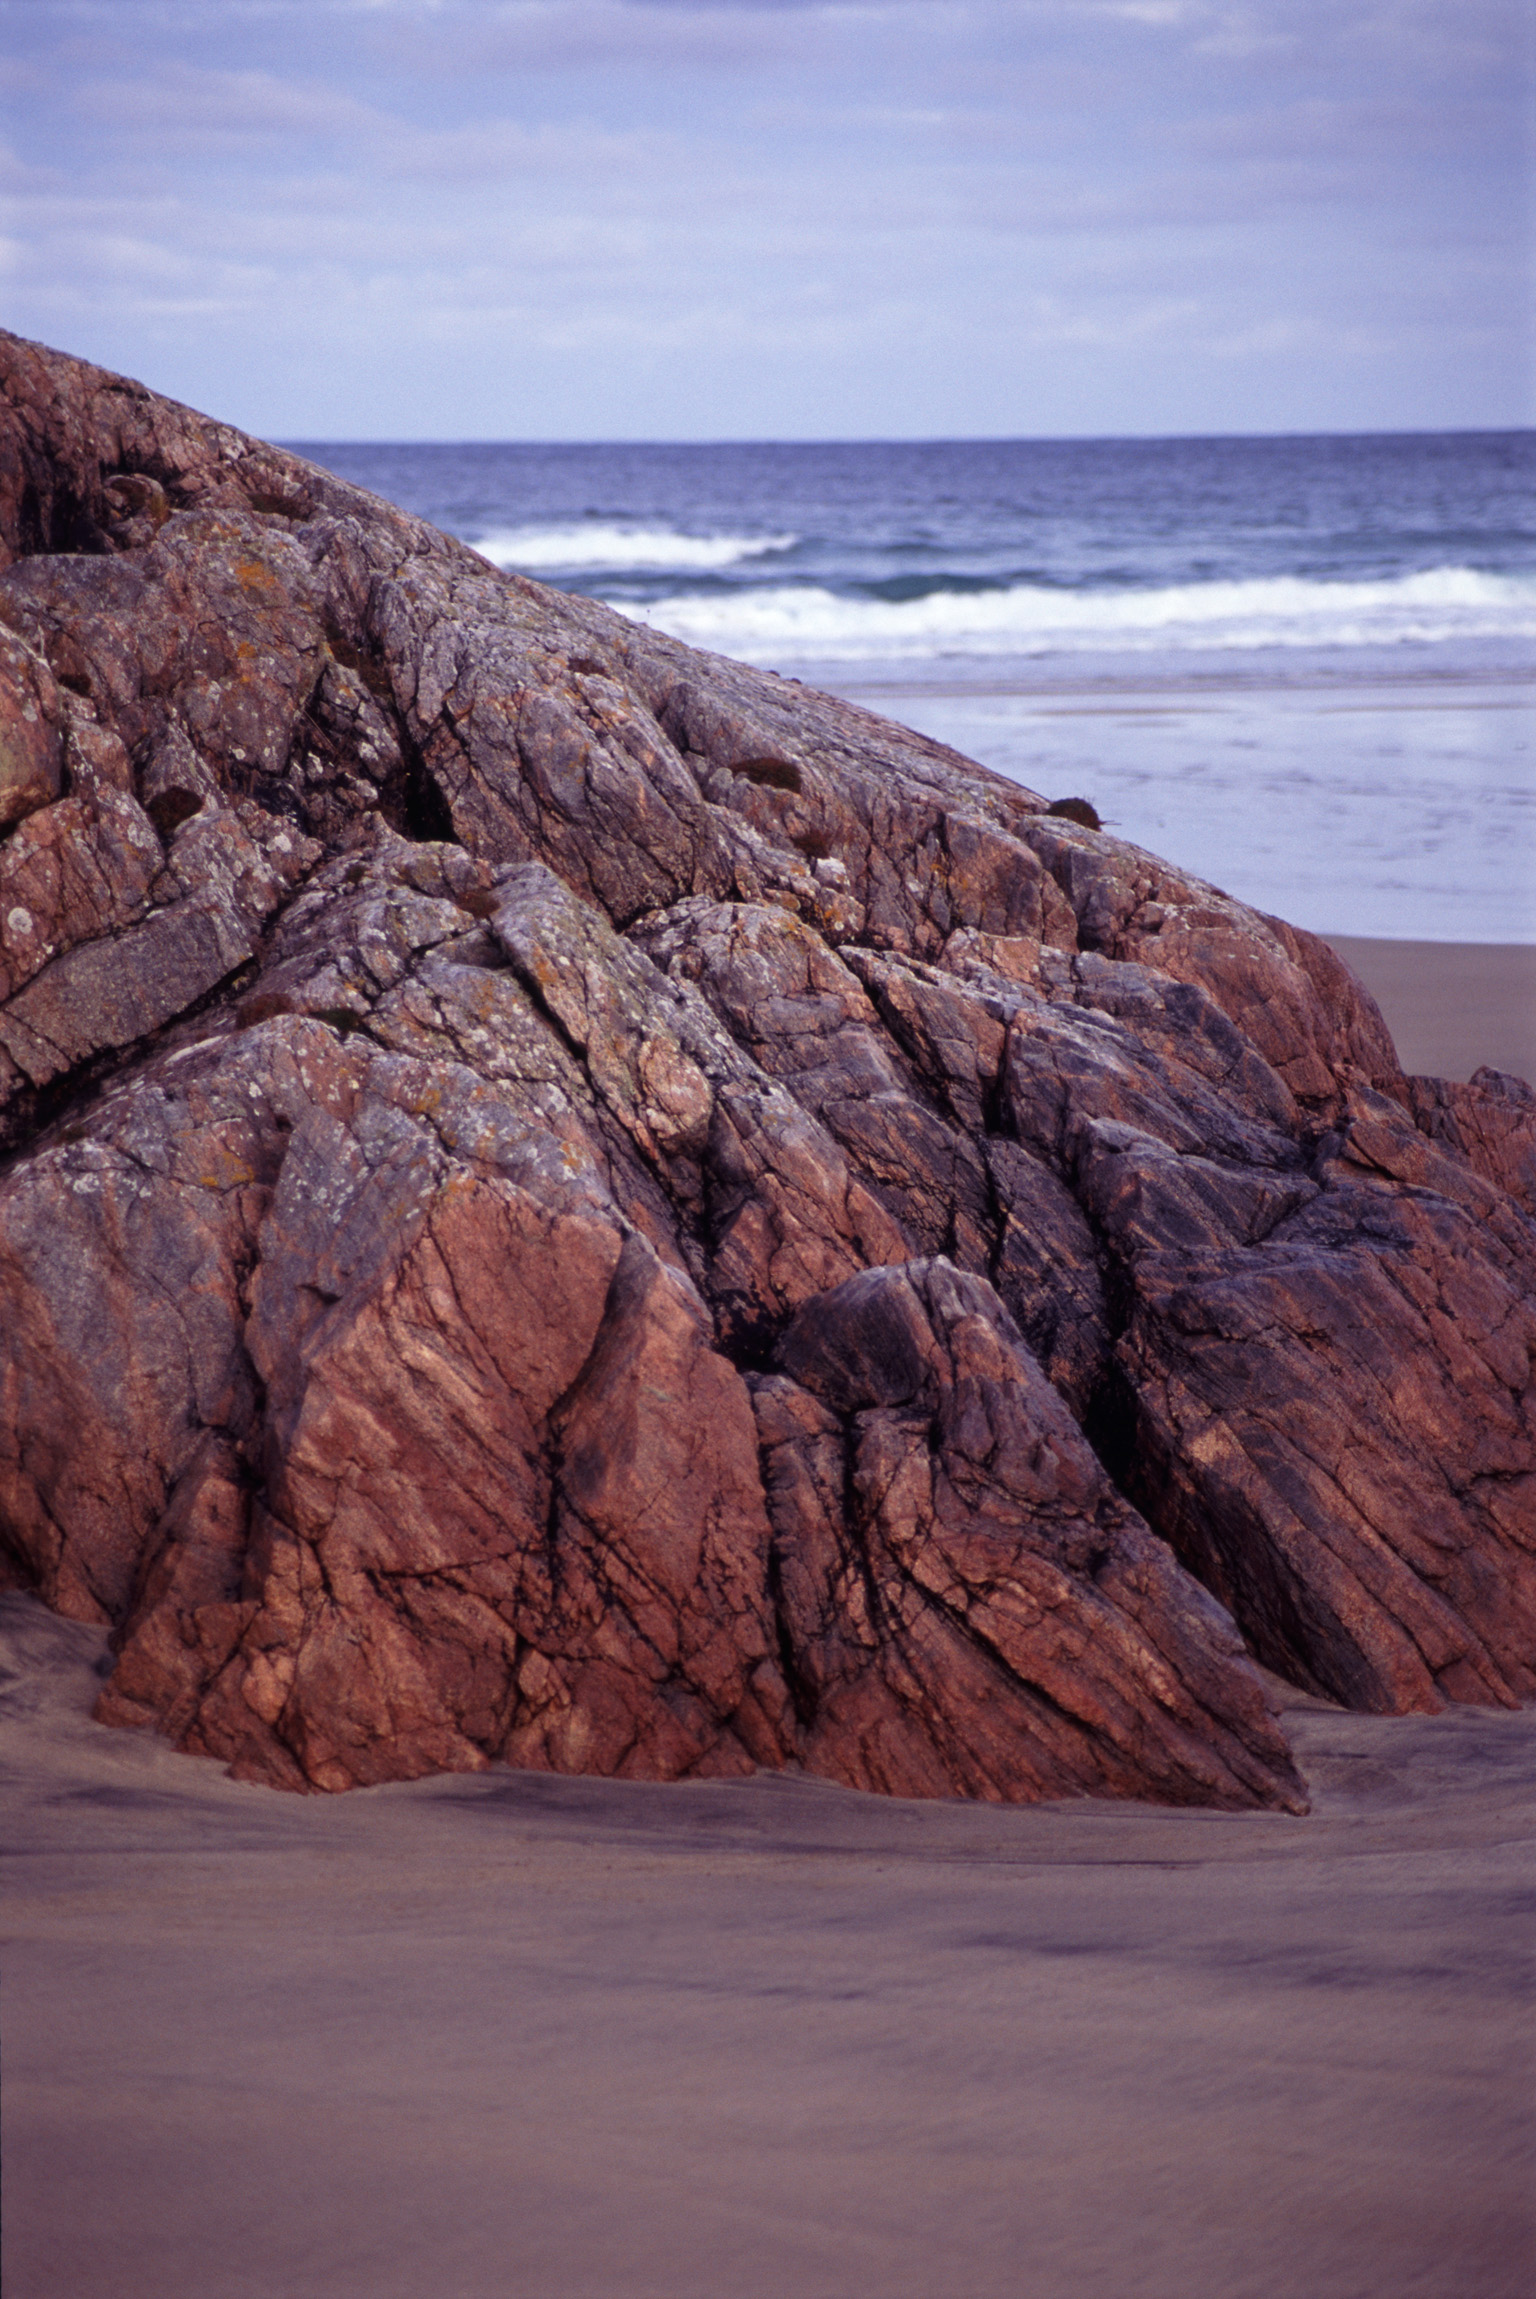 Coastal Rock Formation on Overcast Beach in Lewis, Hebrides, Scotland